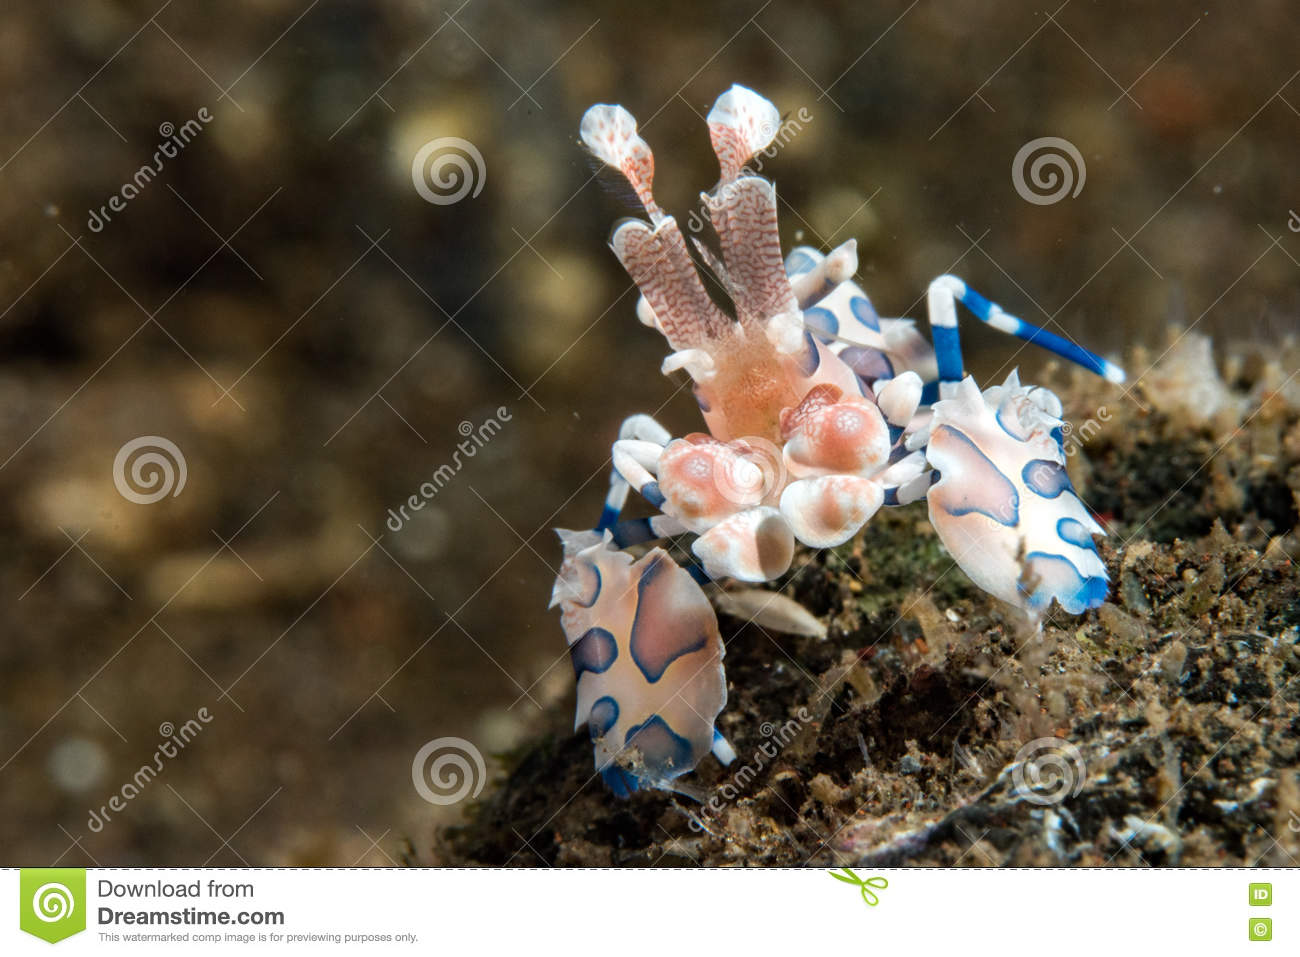 Harlequin crab stock photo. Image of indo, crab, claws 10642318.